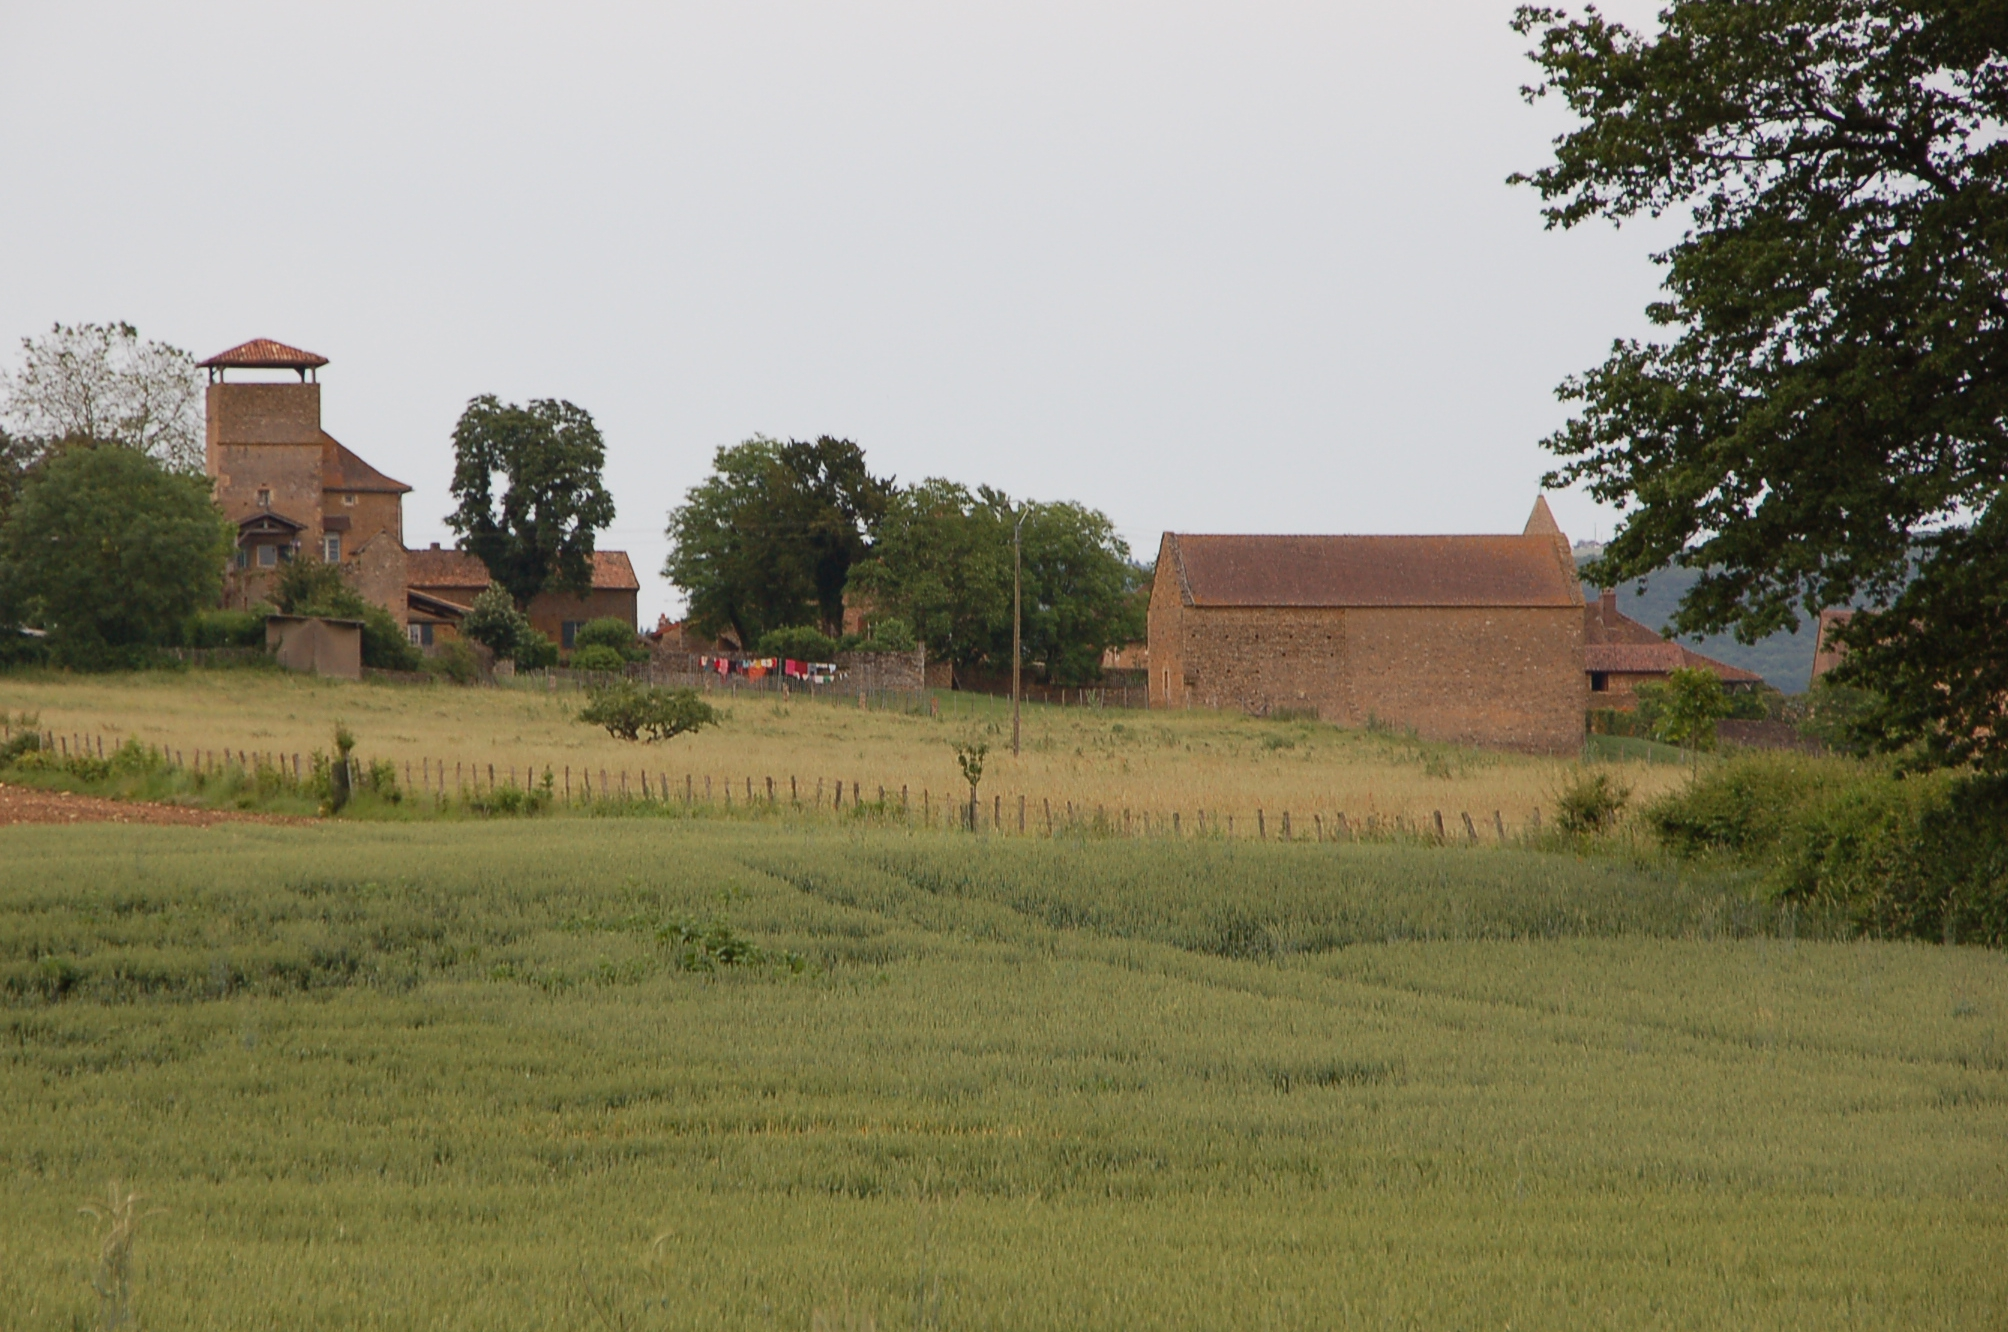 This is what the entire neighborhood of Taize looked liked. I spent much of my summer walking along these pastures and eating lots of cheese. It was a nice change of pace from my normal, task-filled life.